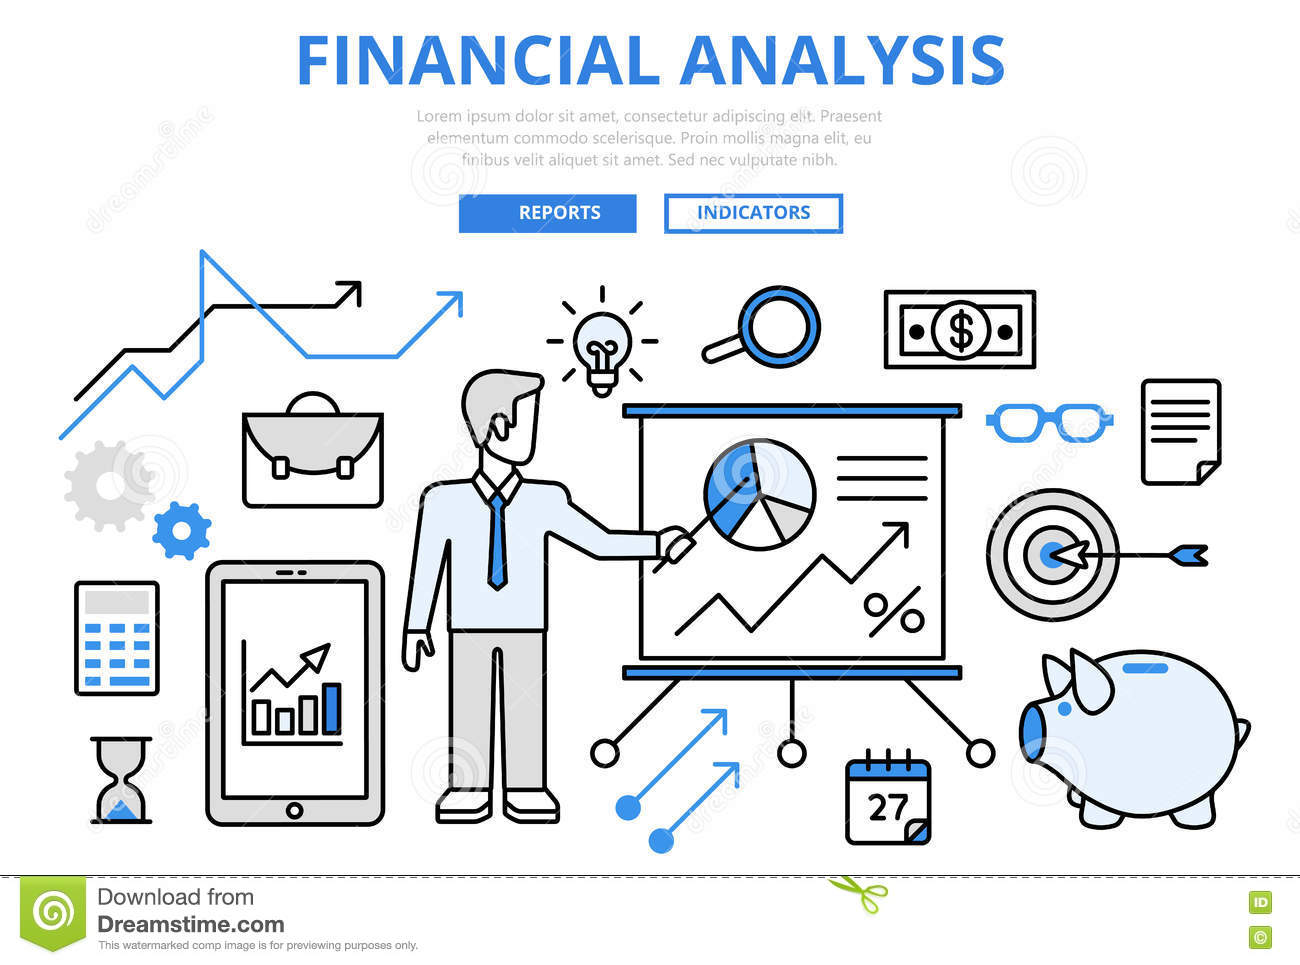 financial analysis of microsoft corporation Swott analysis introduction microsoft corporation is a highly diverse technology company that develops software for personal computers, web applications, video games.